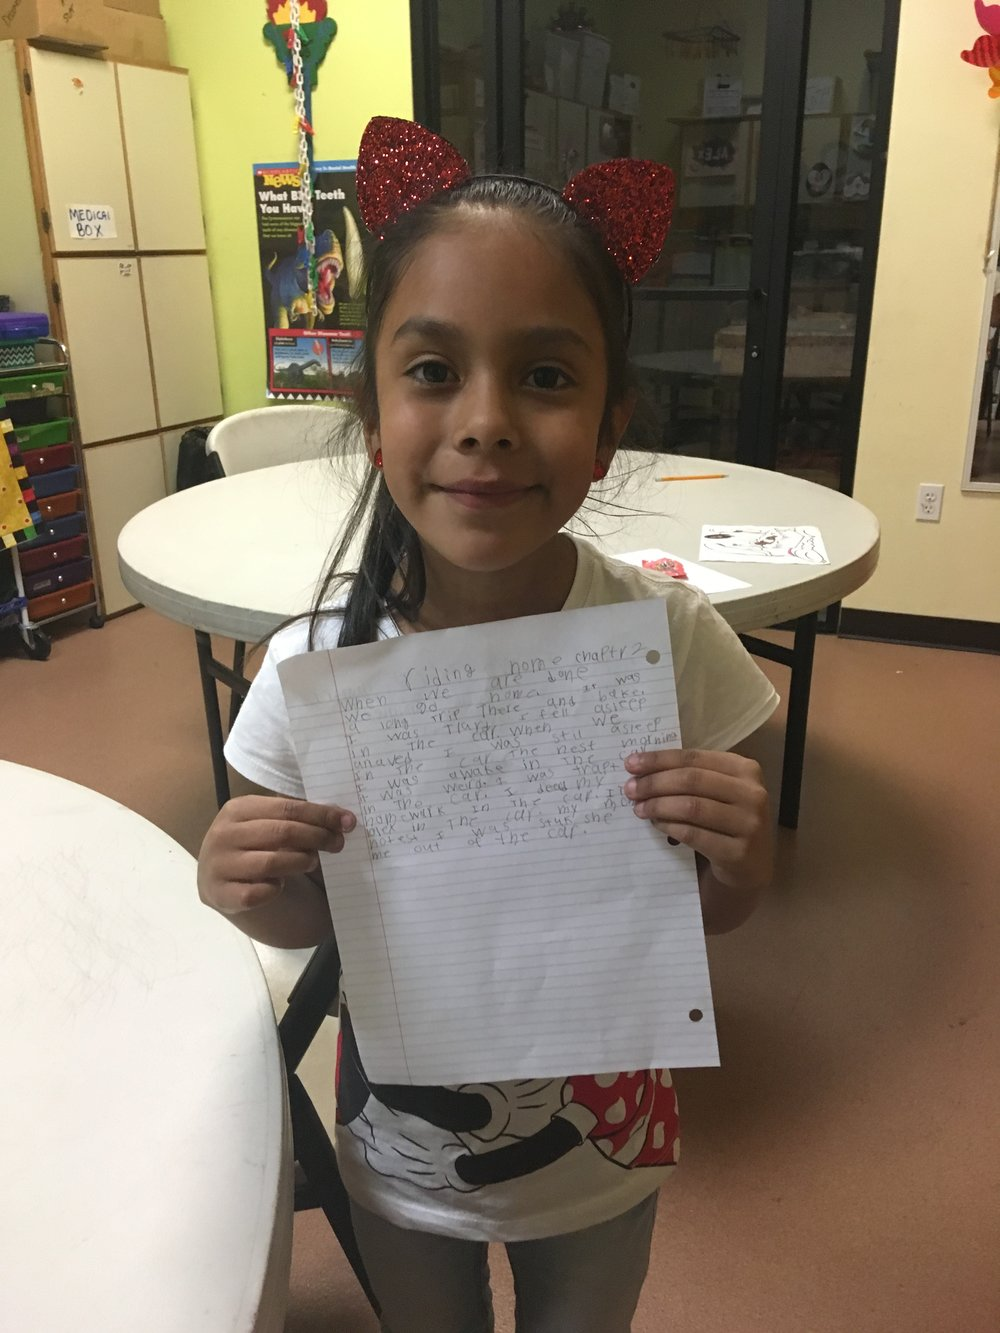 Zoe is 7 years old and looks forward to creative writing lessons every week!